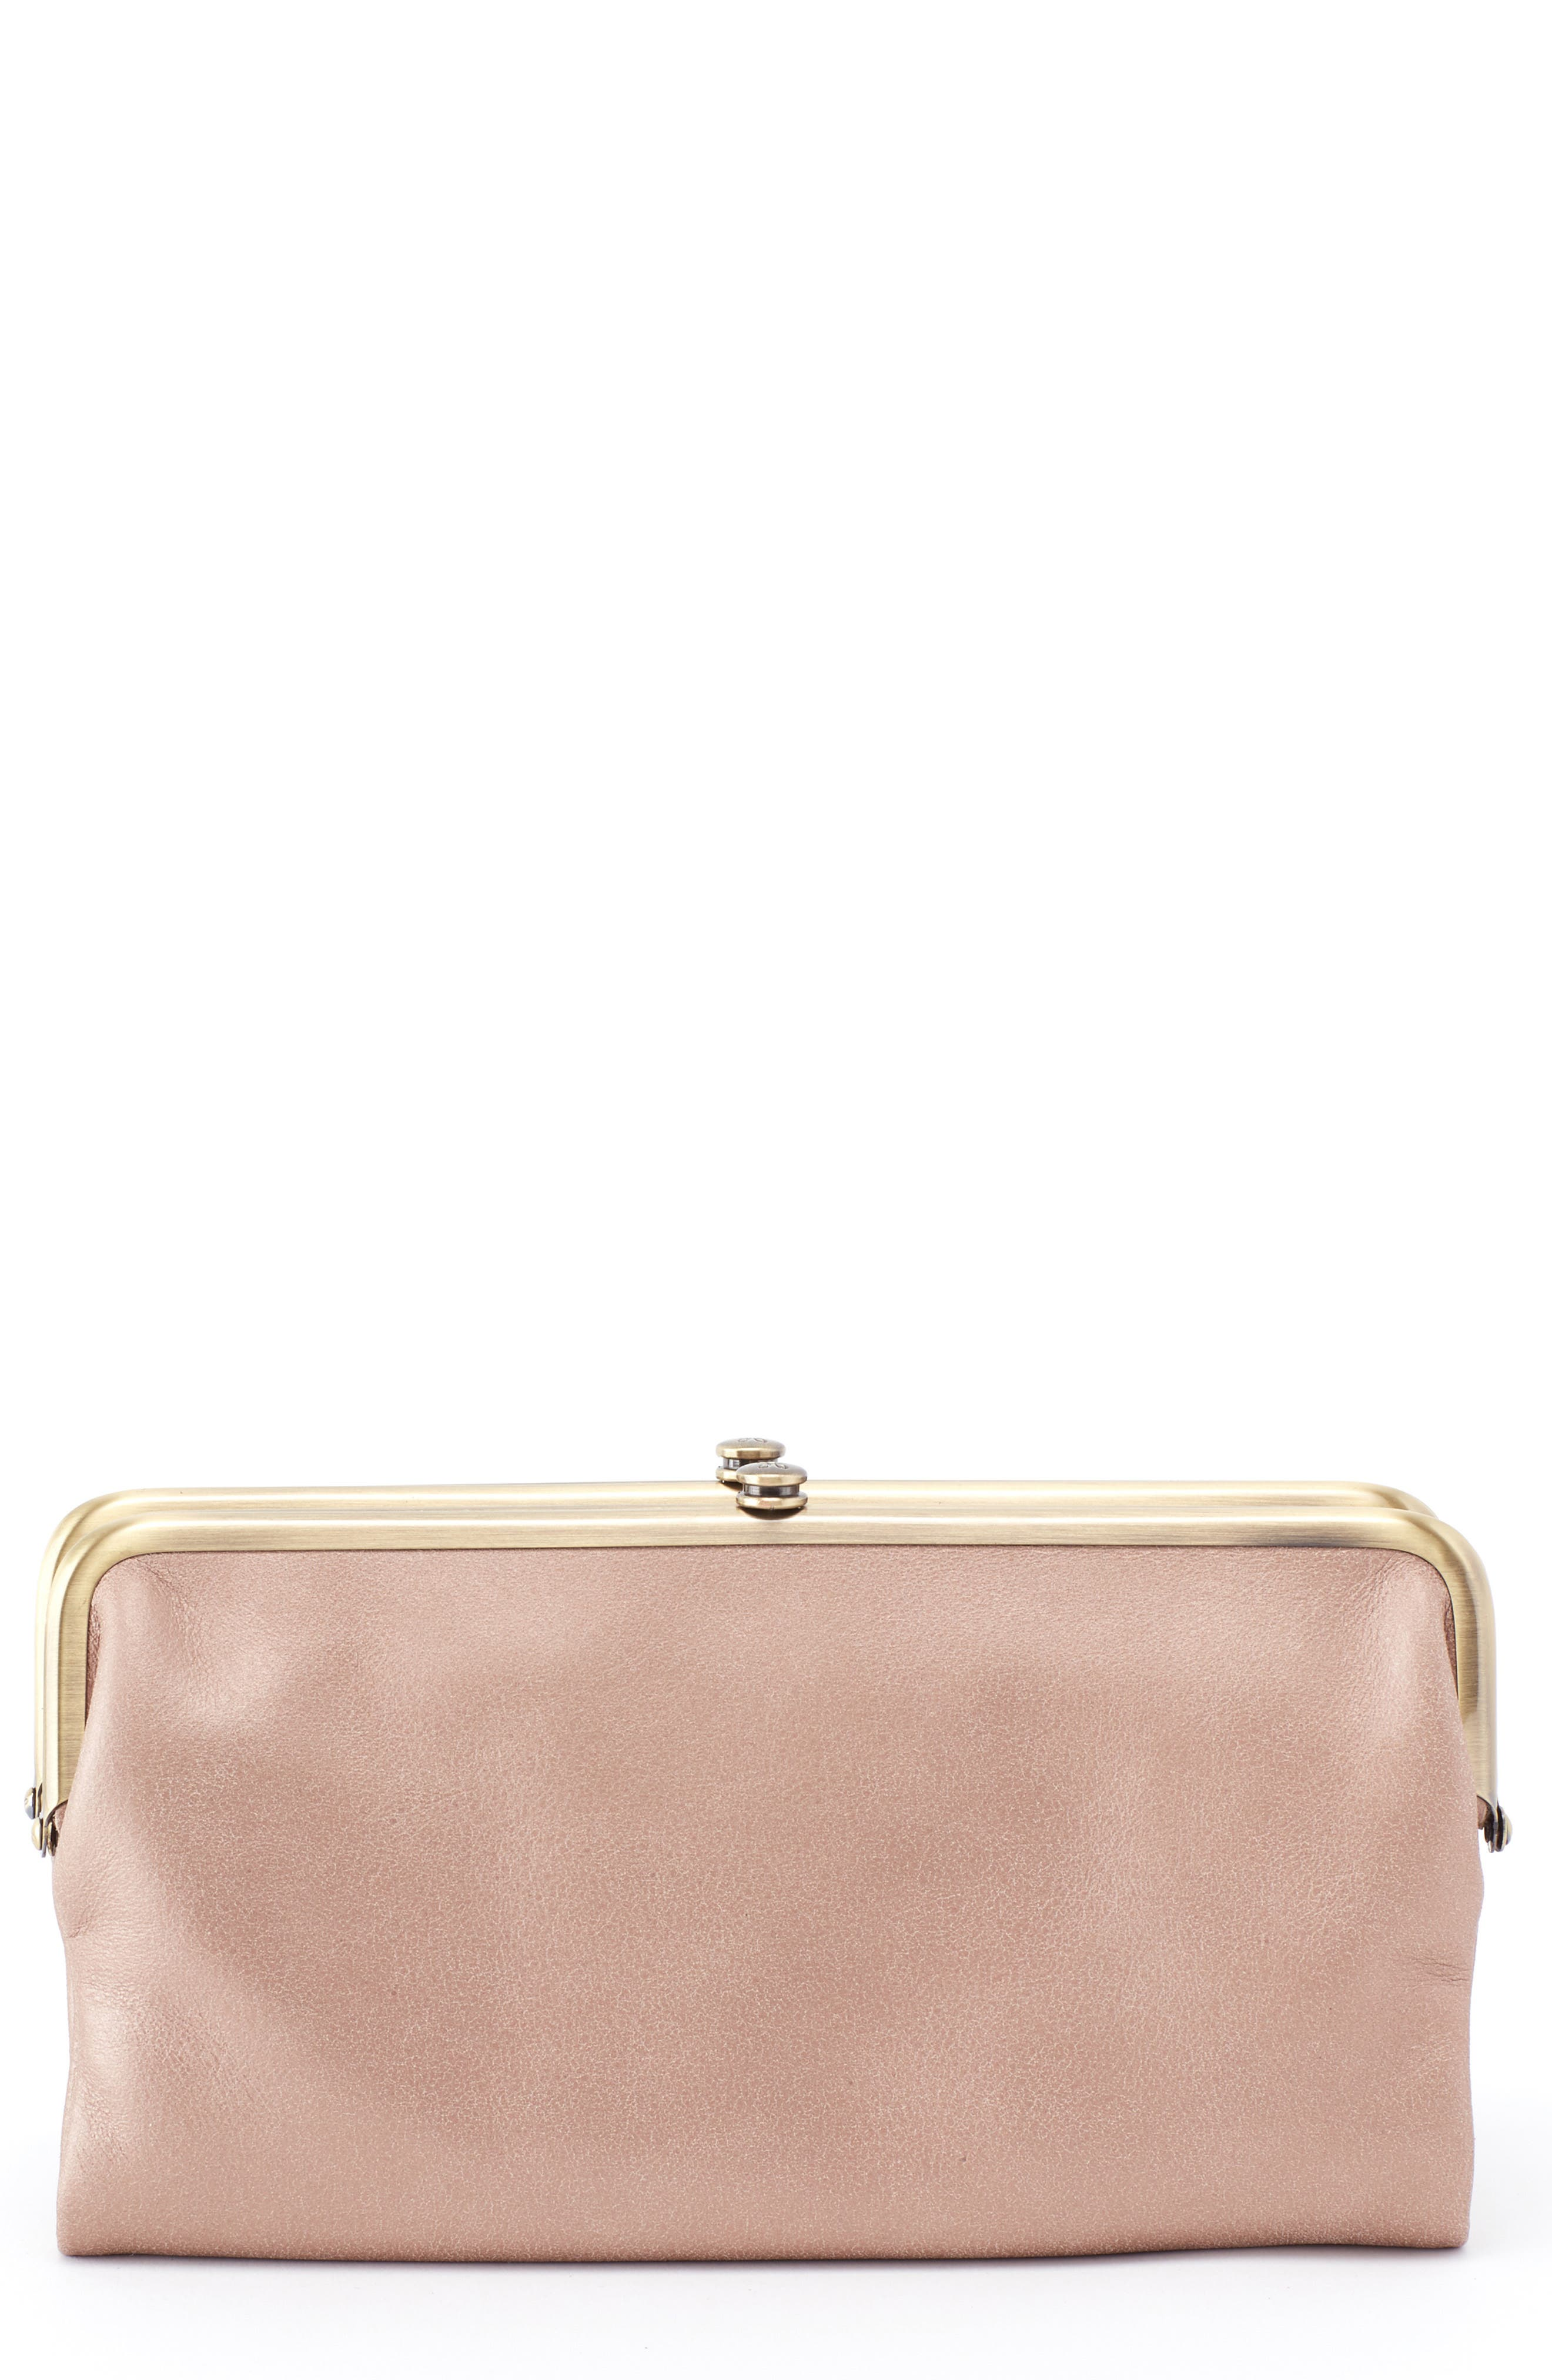 HOBO Lauren Double Frame Clutch, Main, color, TWILIGHT